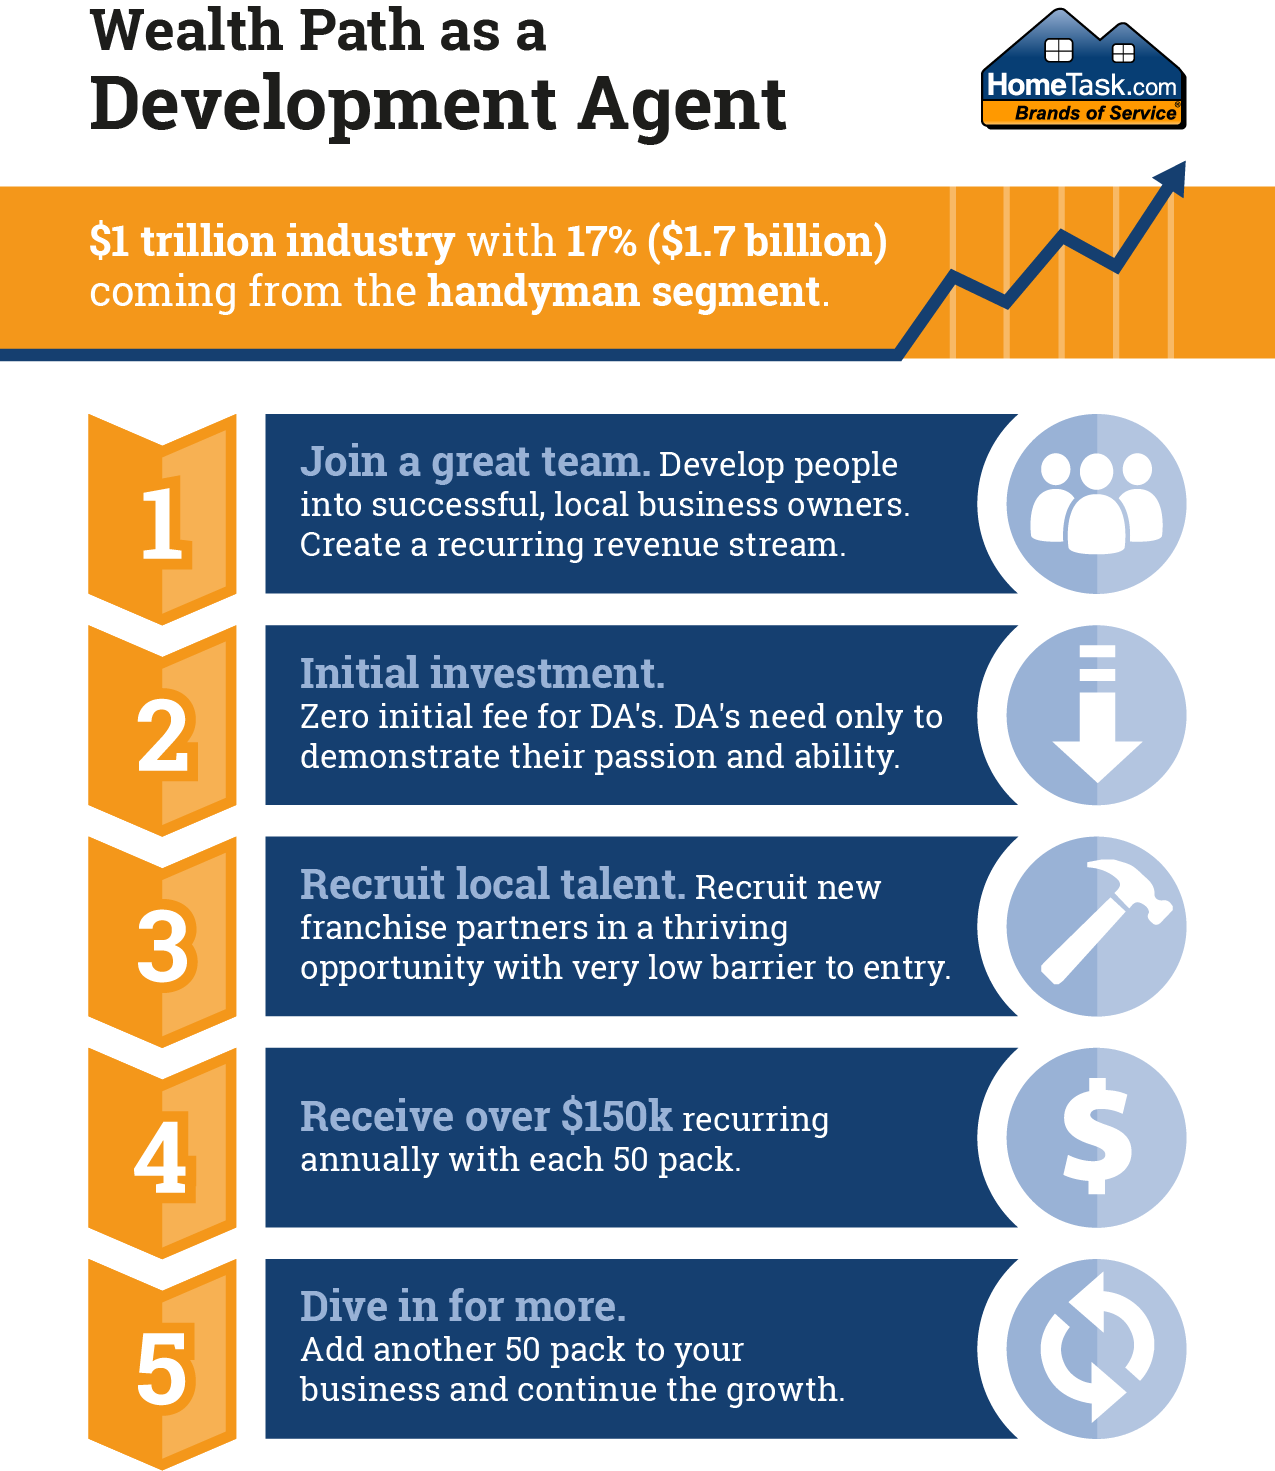 Development Agent Infographic